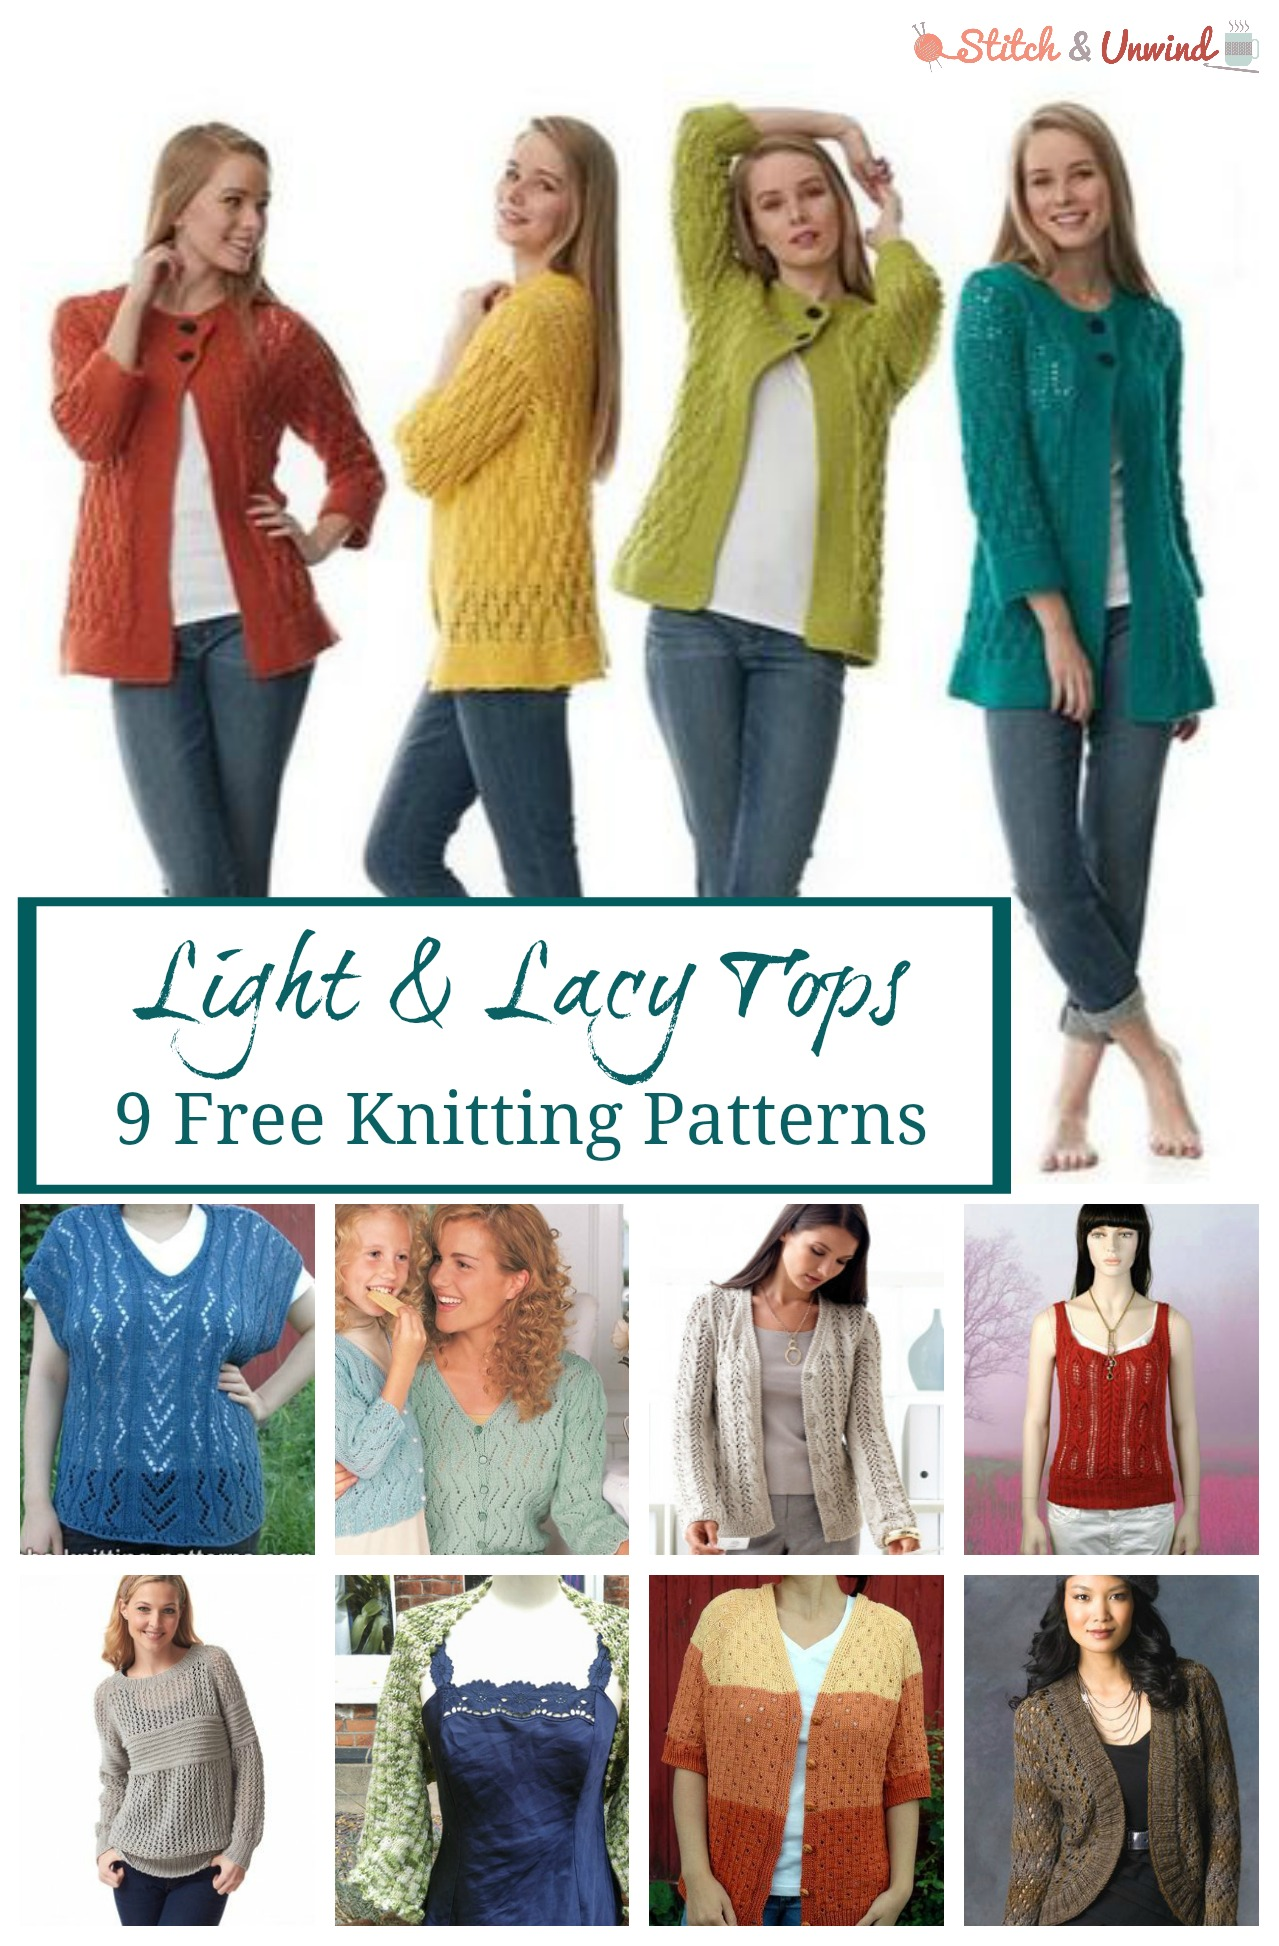 Light & Lacy Tops